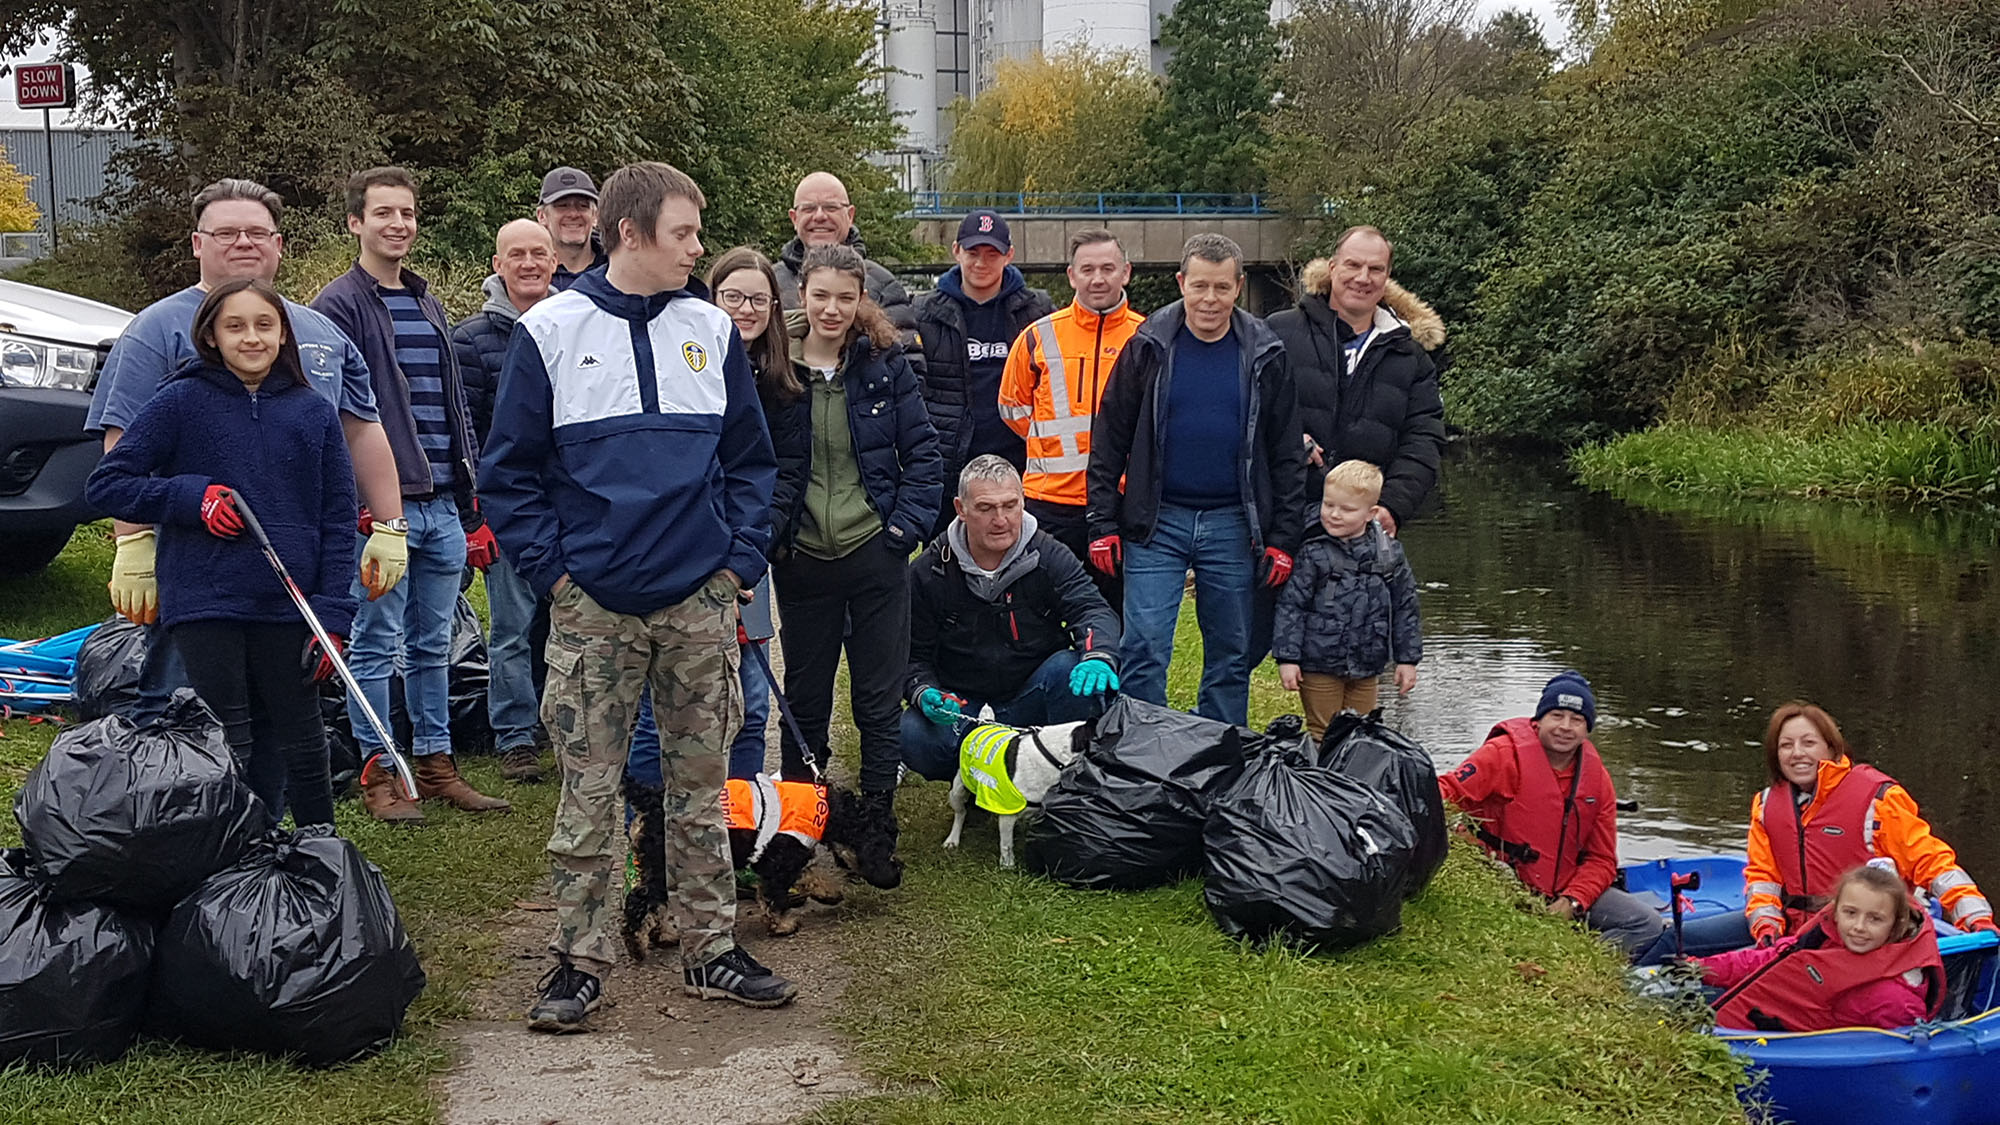 Huddersfield Canal clean up 191020